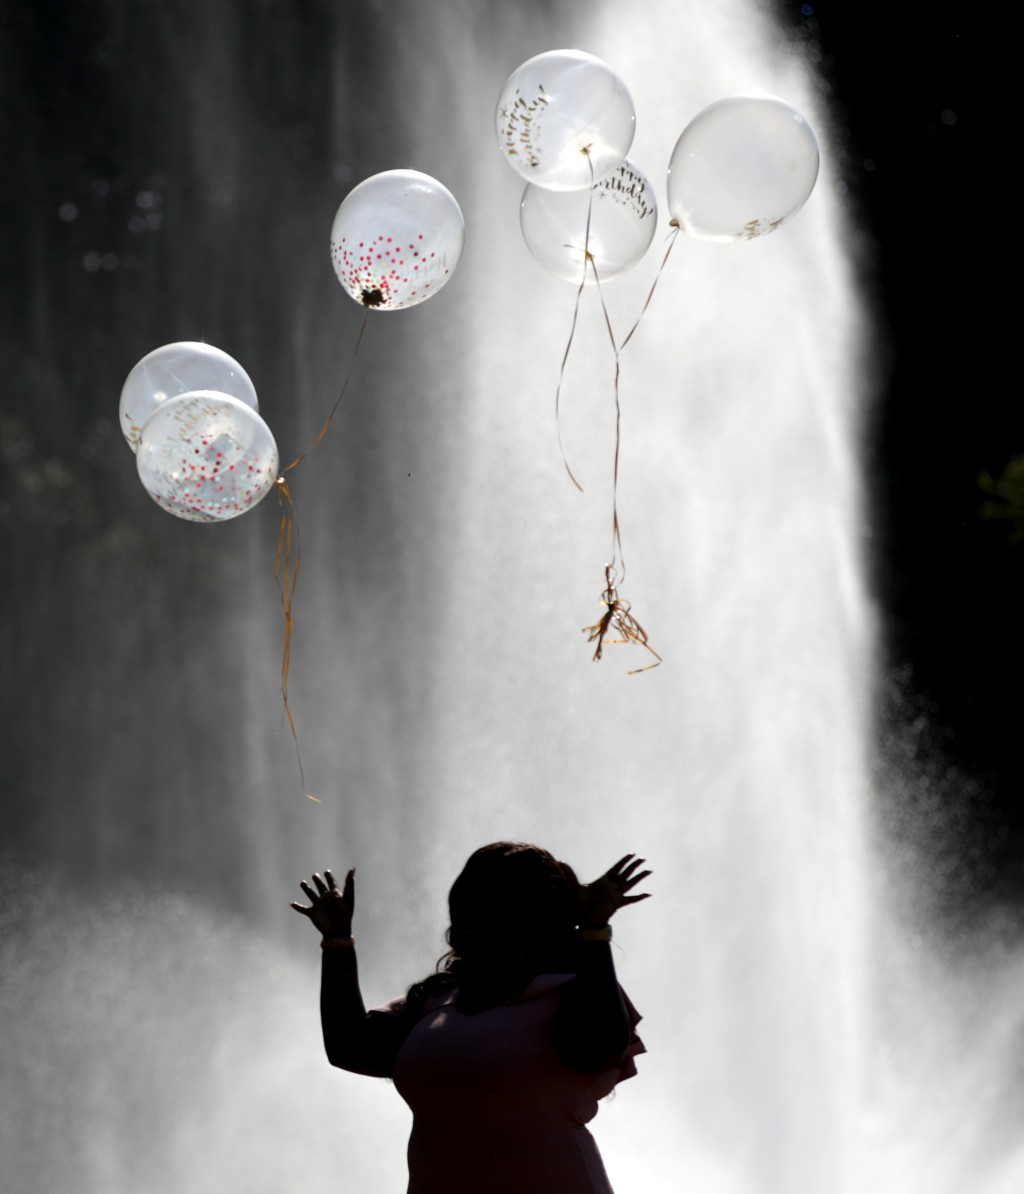 FILE- In this Oct. 5, 2017, file photo Annette Antwi, of Newark, N.J., releases balloons while celebrating her birthday in front of a fountain at Bran...